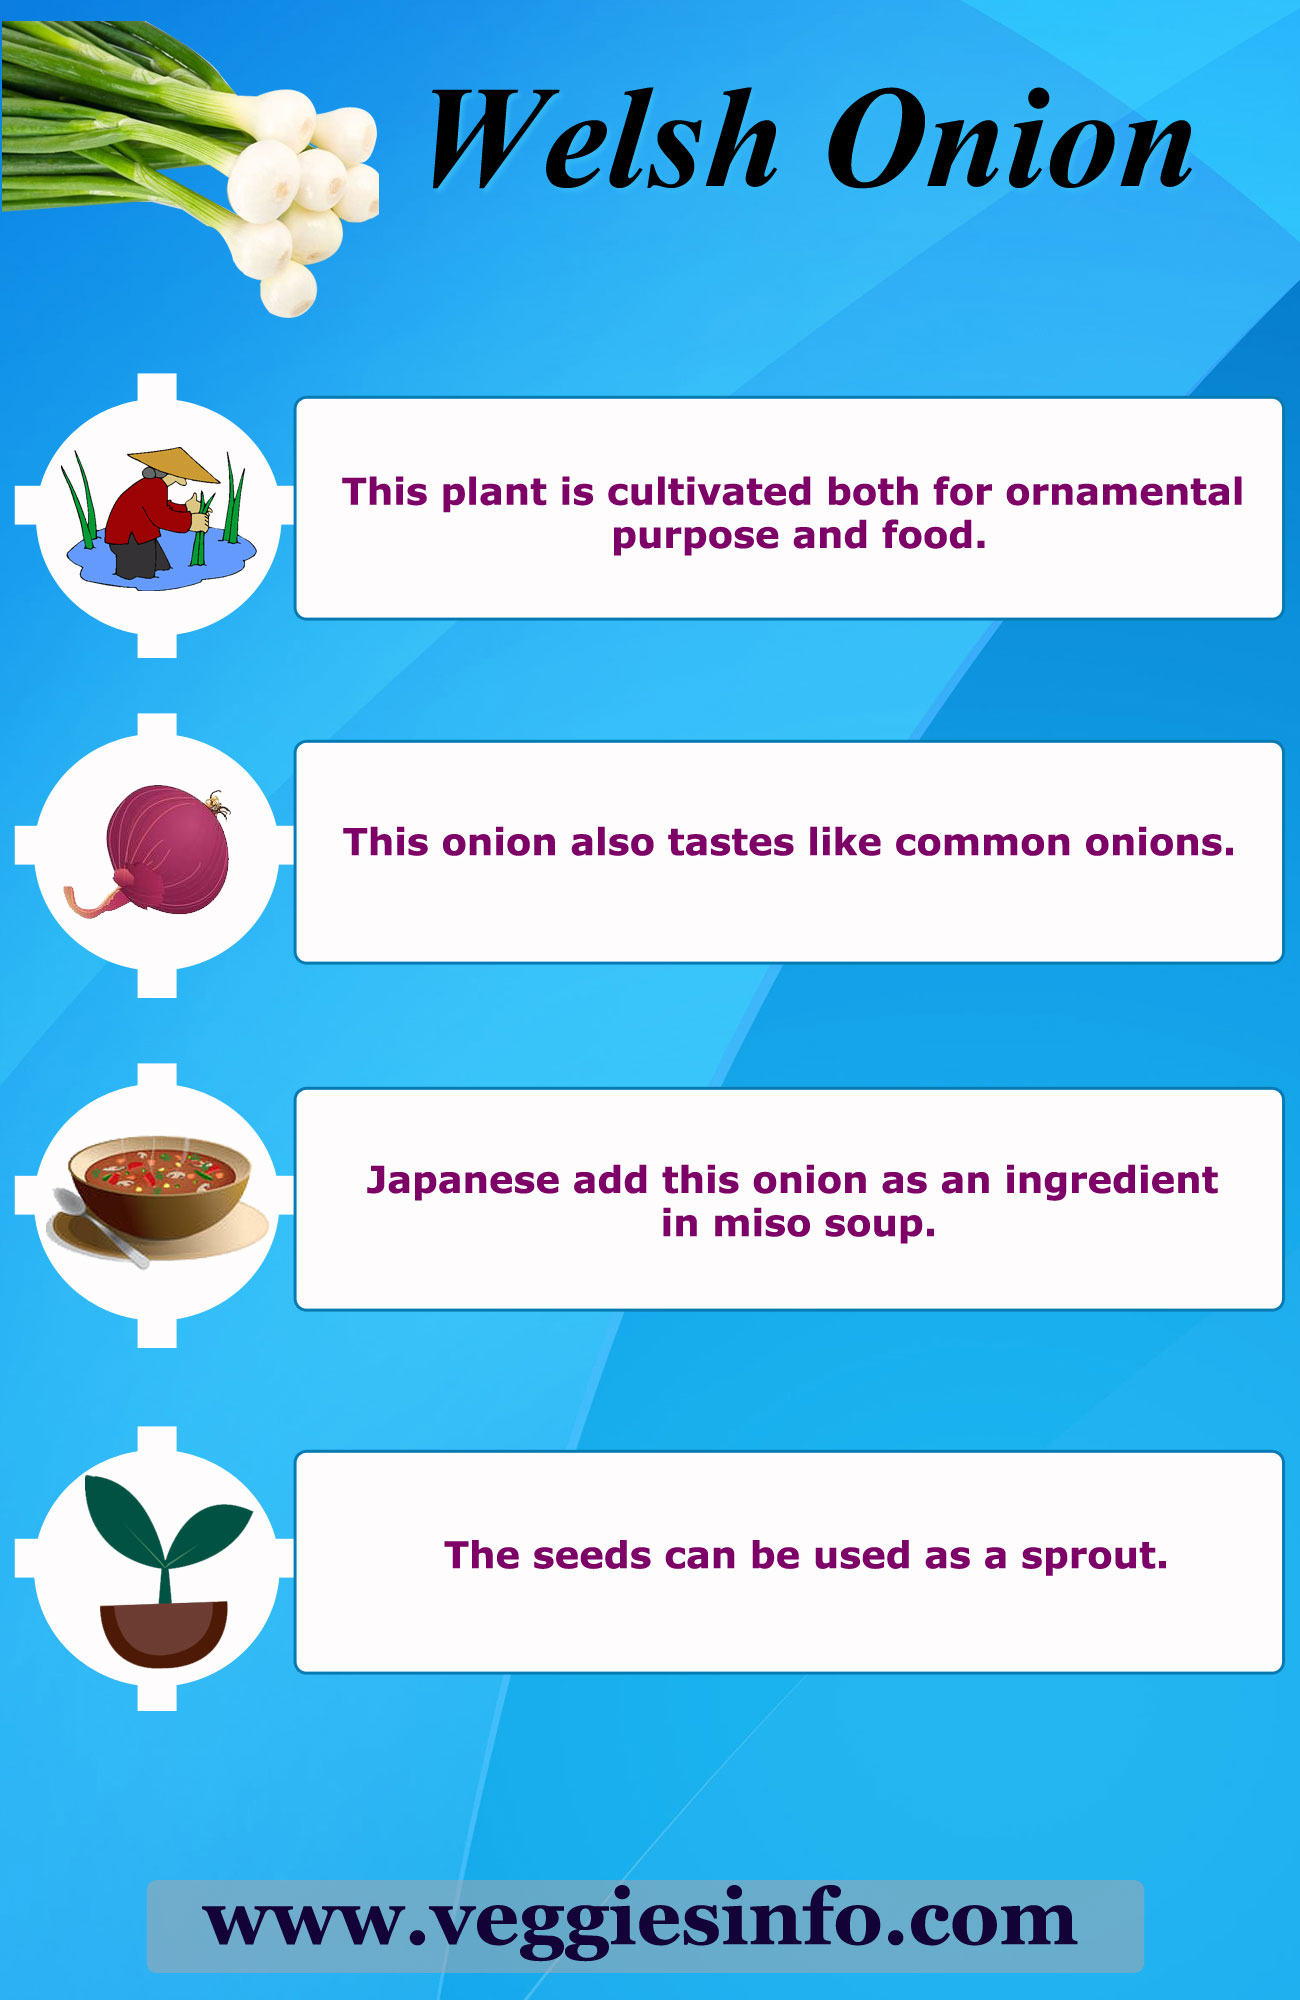 Uses of Welsh Onion